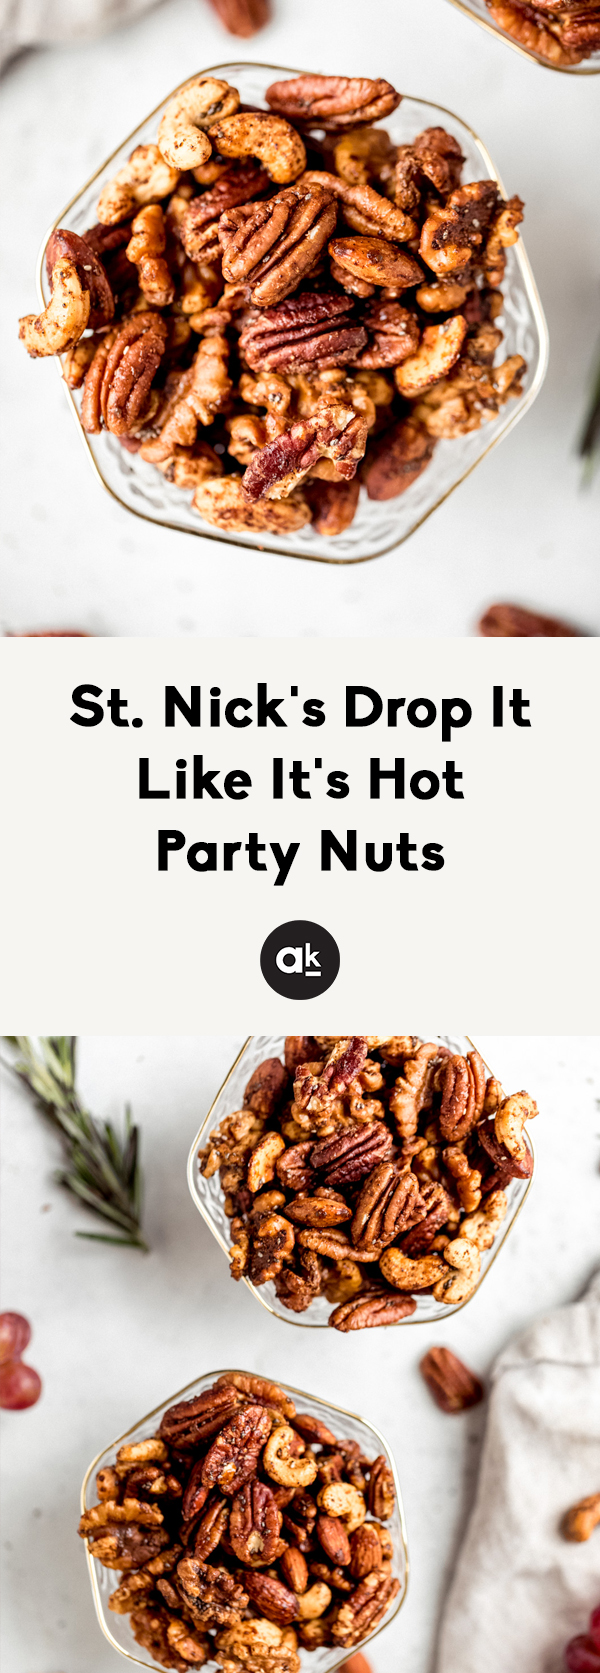 Santa's sweet and spicy party nuts are not your average nuts. They're sweet with maple syrup, spicy thanks to cayenne -- the perfect mix of naughty and nice. Make them for someone this holiday season and have a jolly good time.